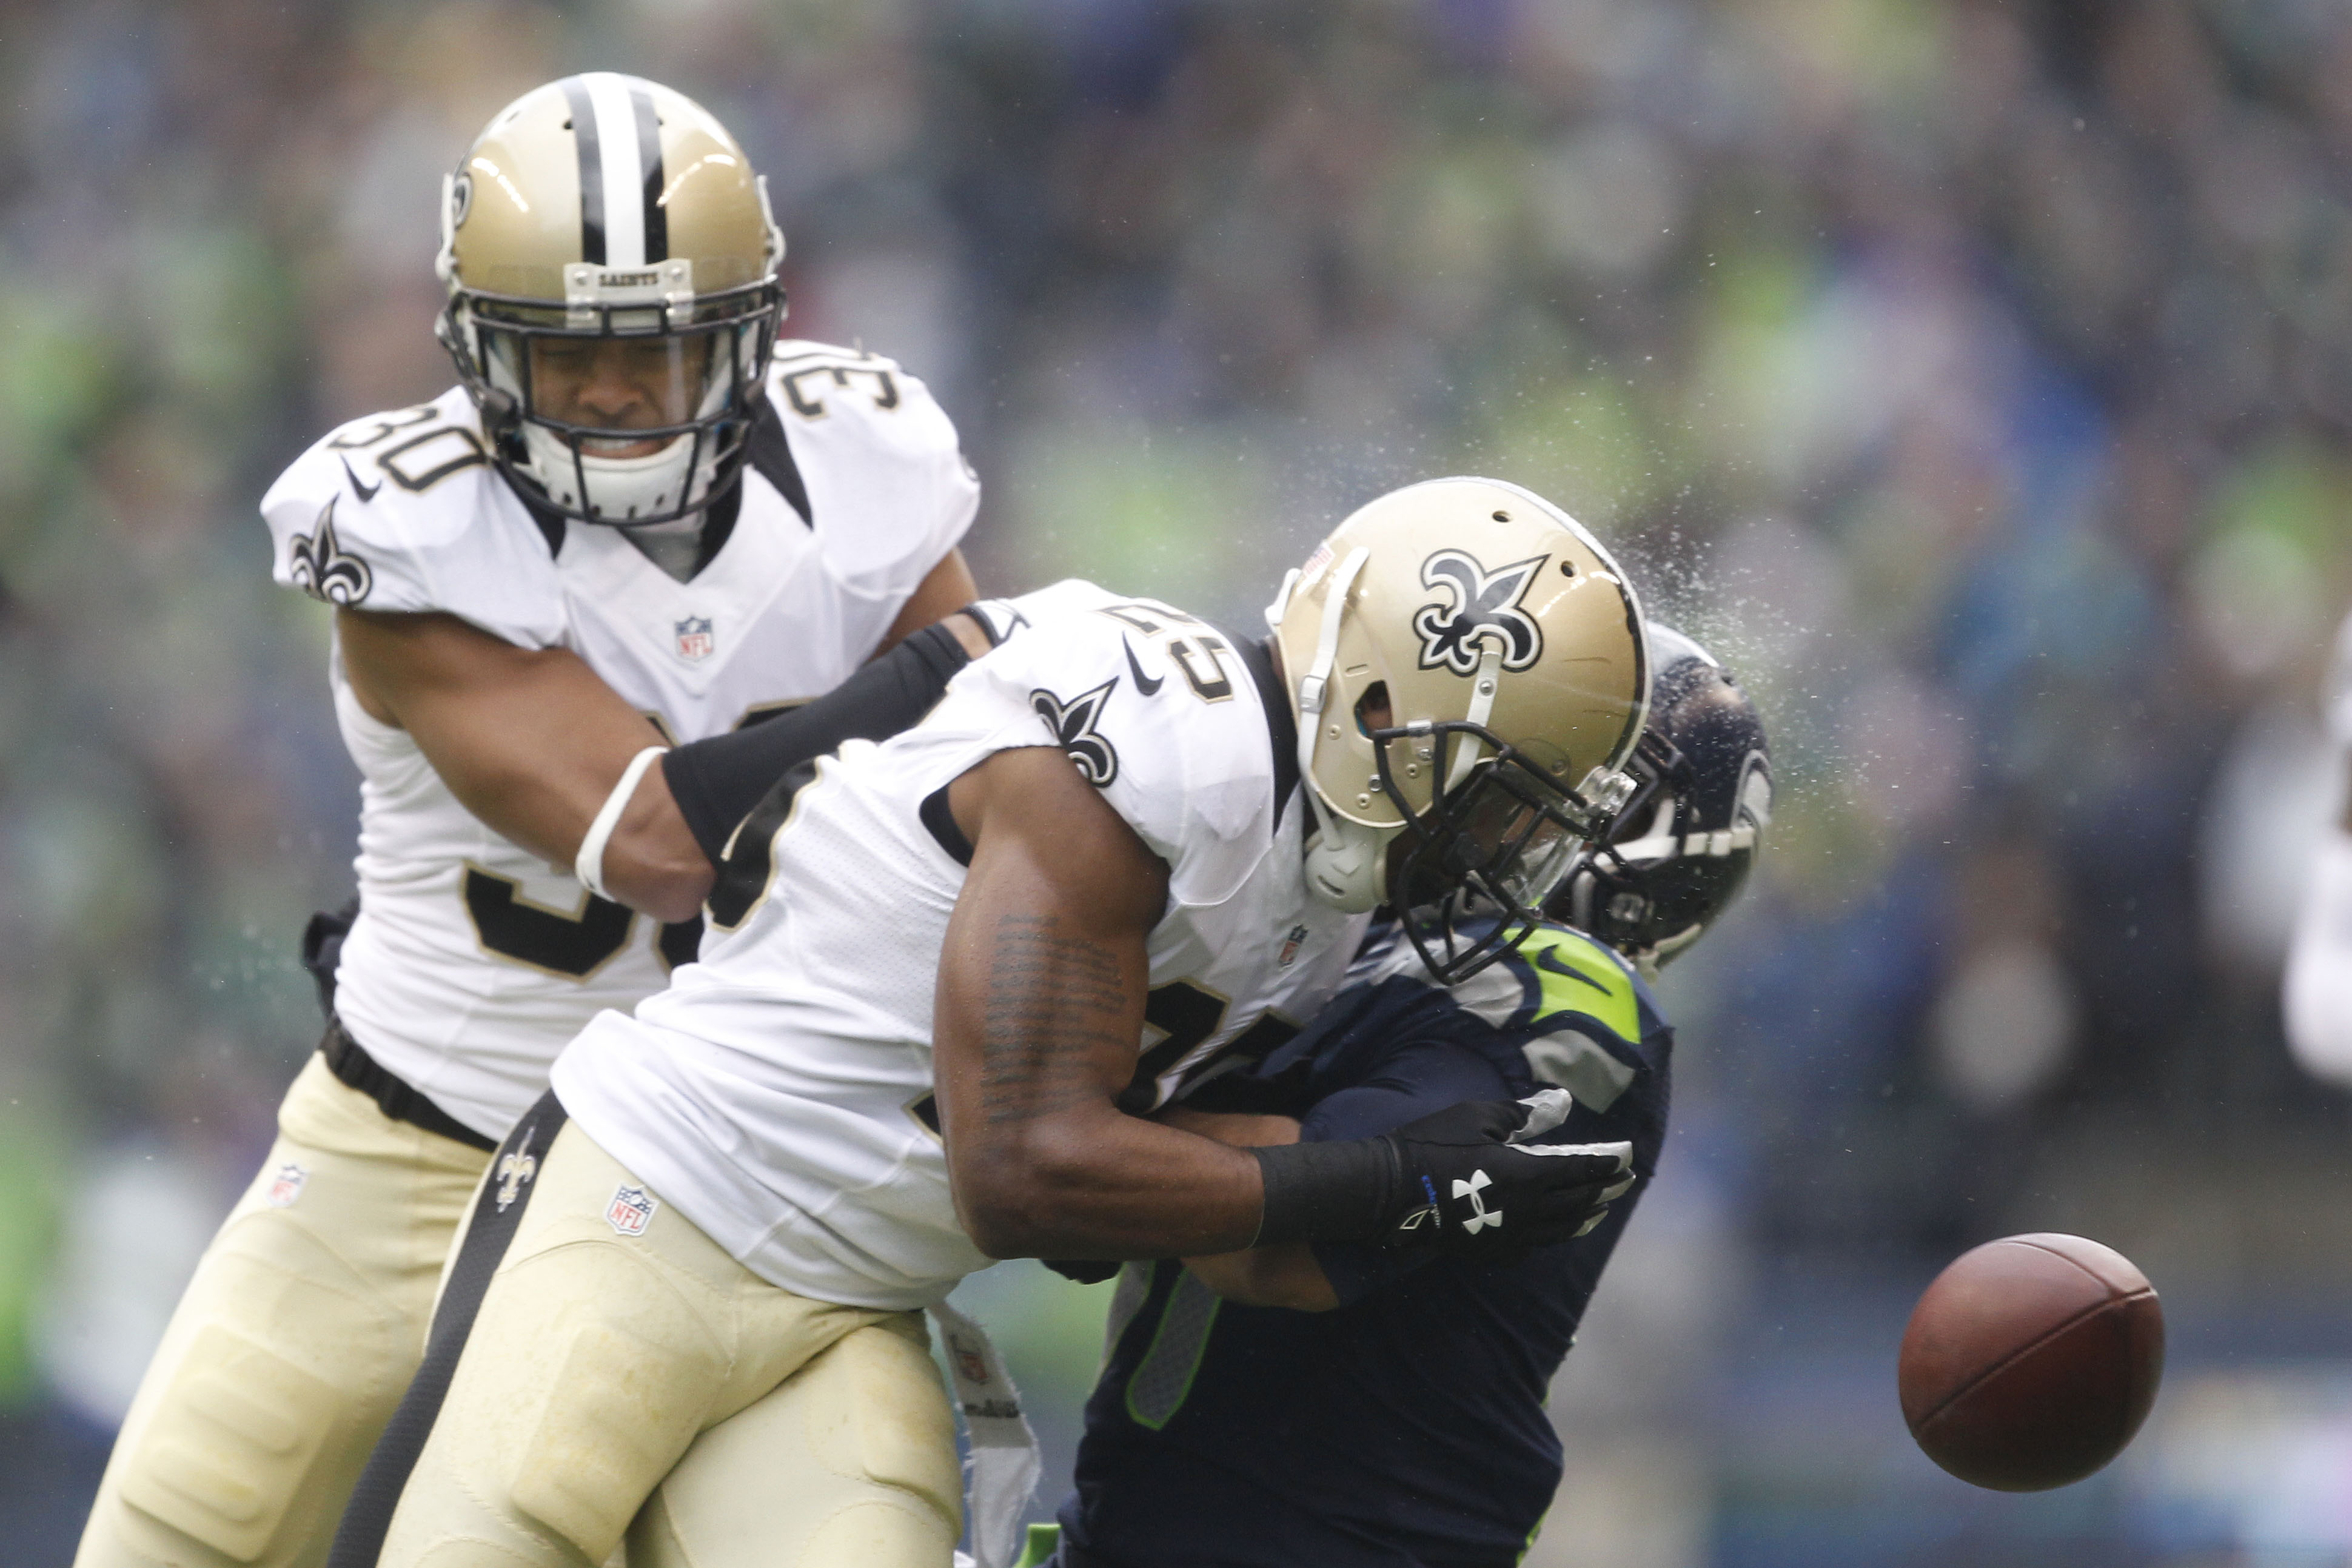 7665889-nfl-divisional-round-new-orleans-saints-at-seattle-seahawks